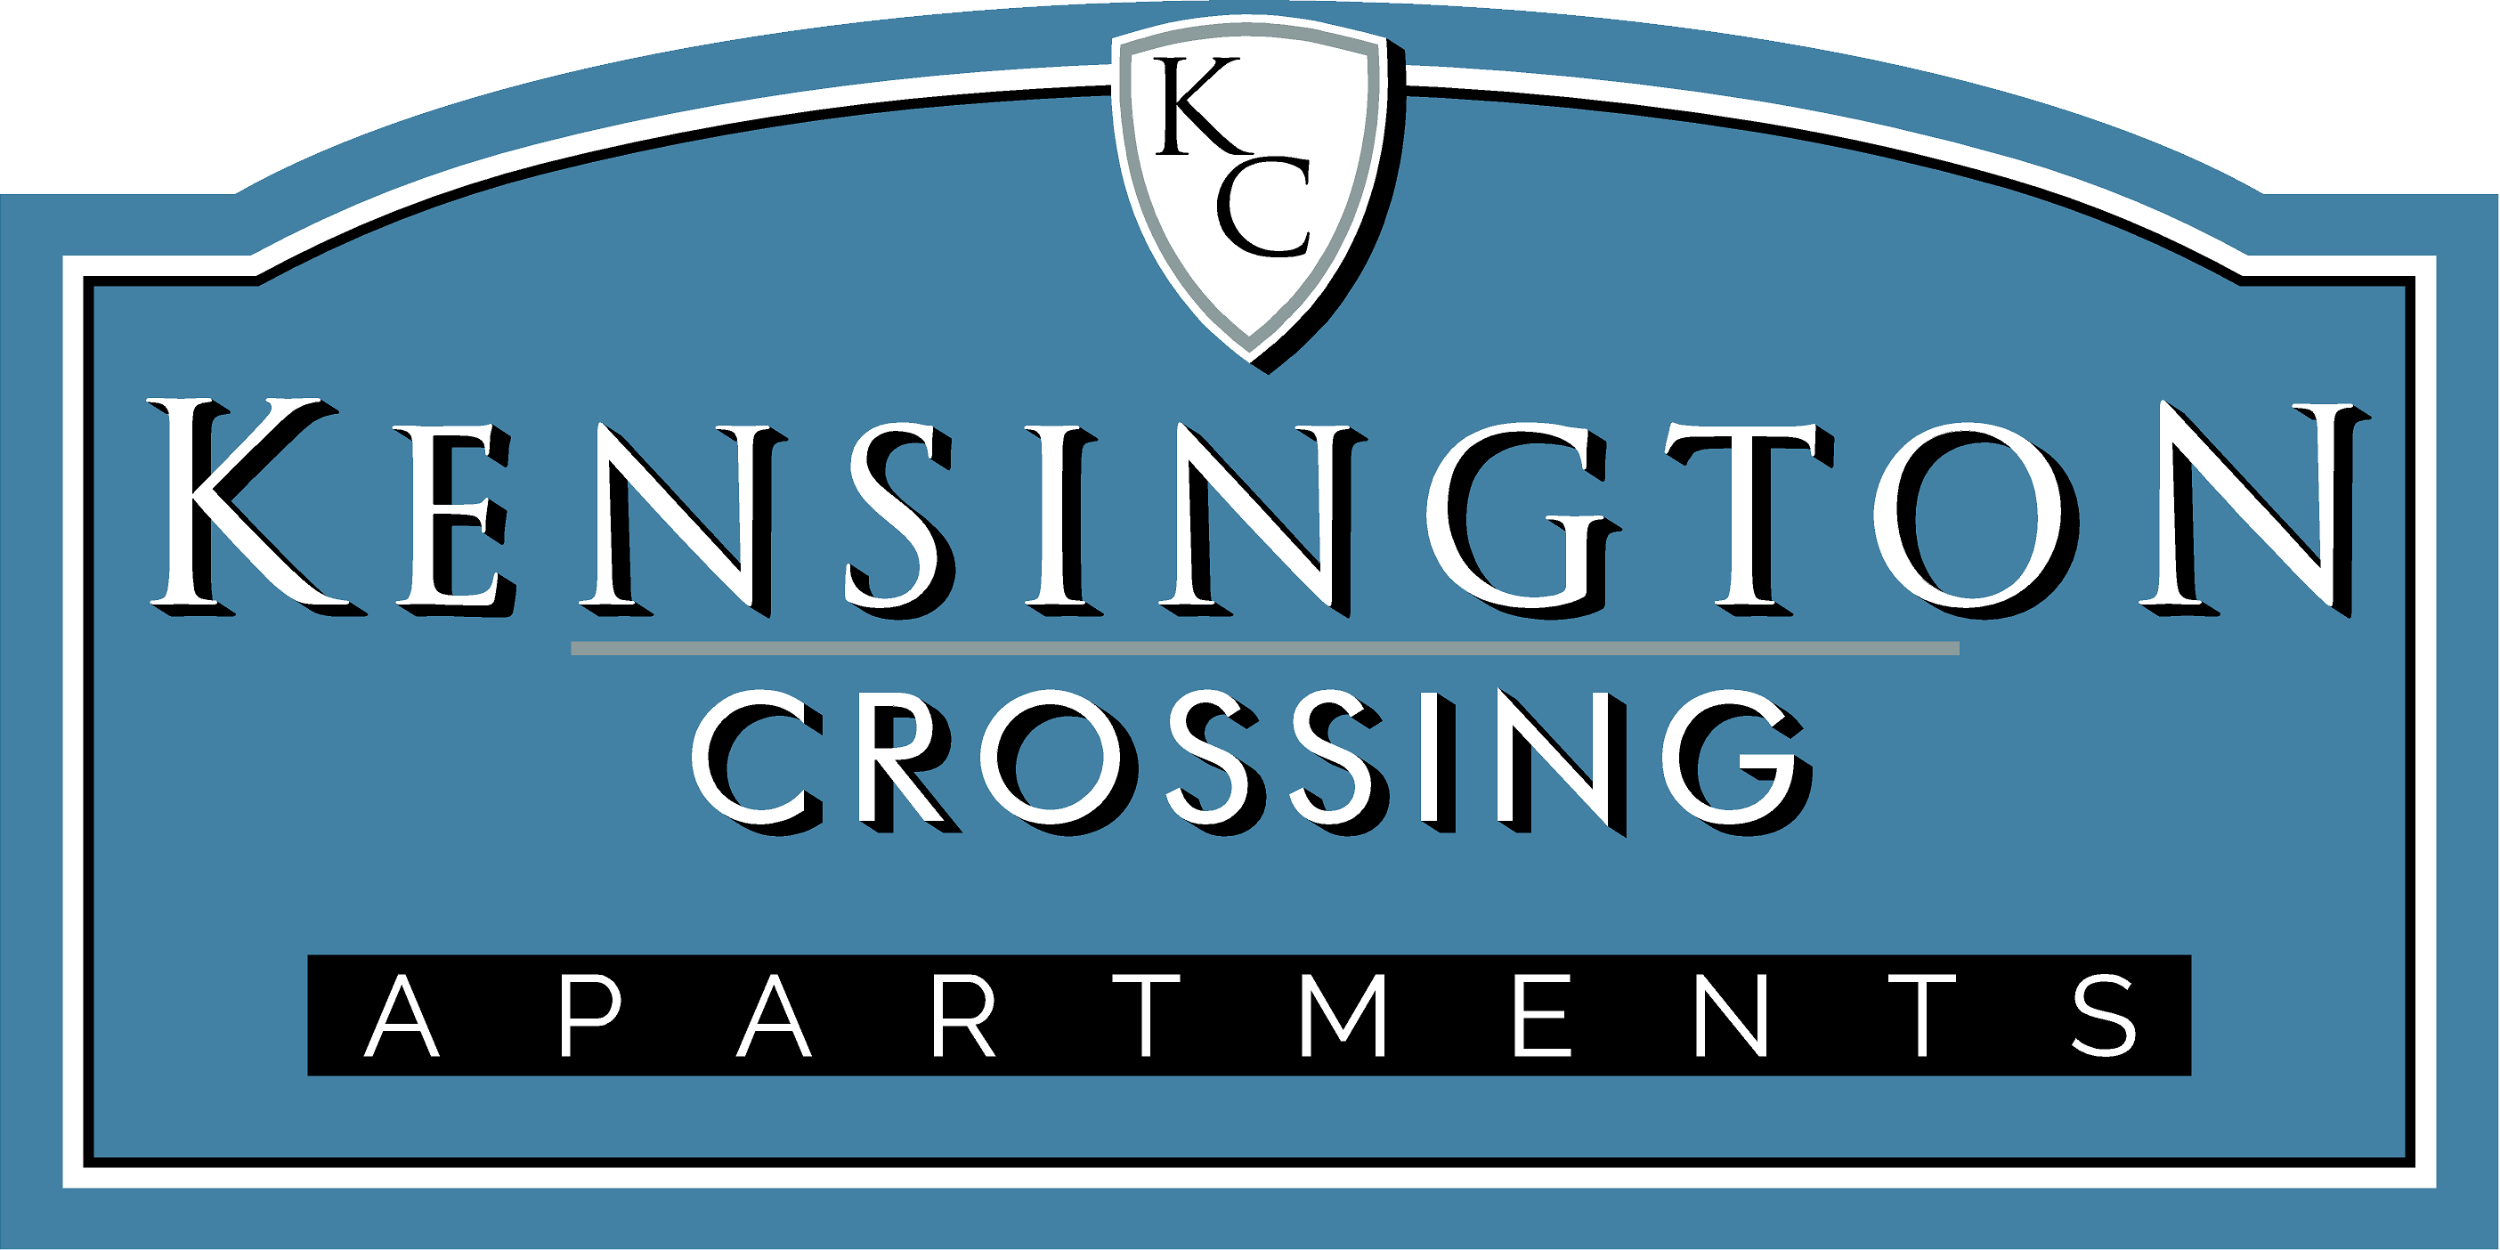 Kensington Crossing Apartments